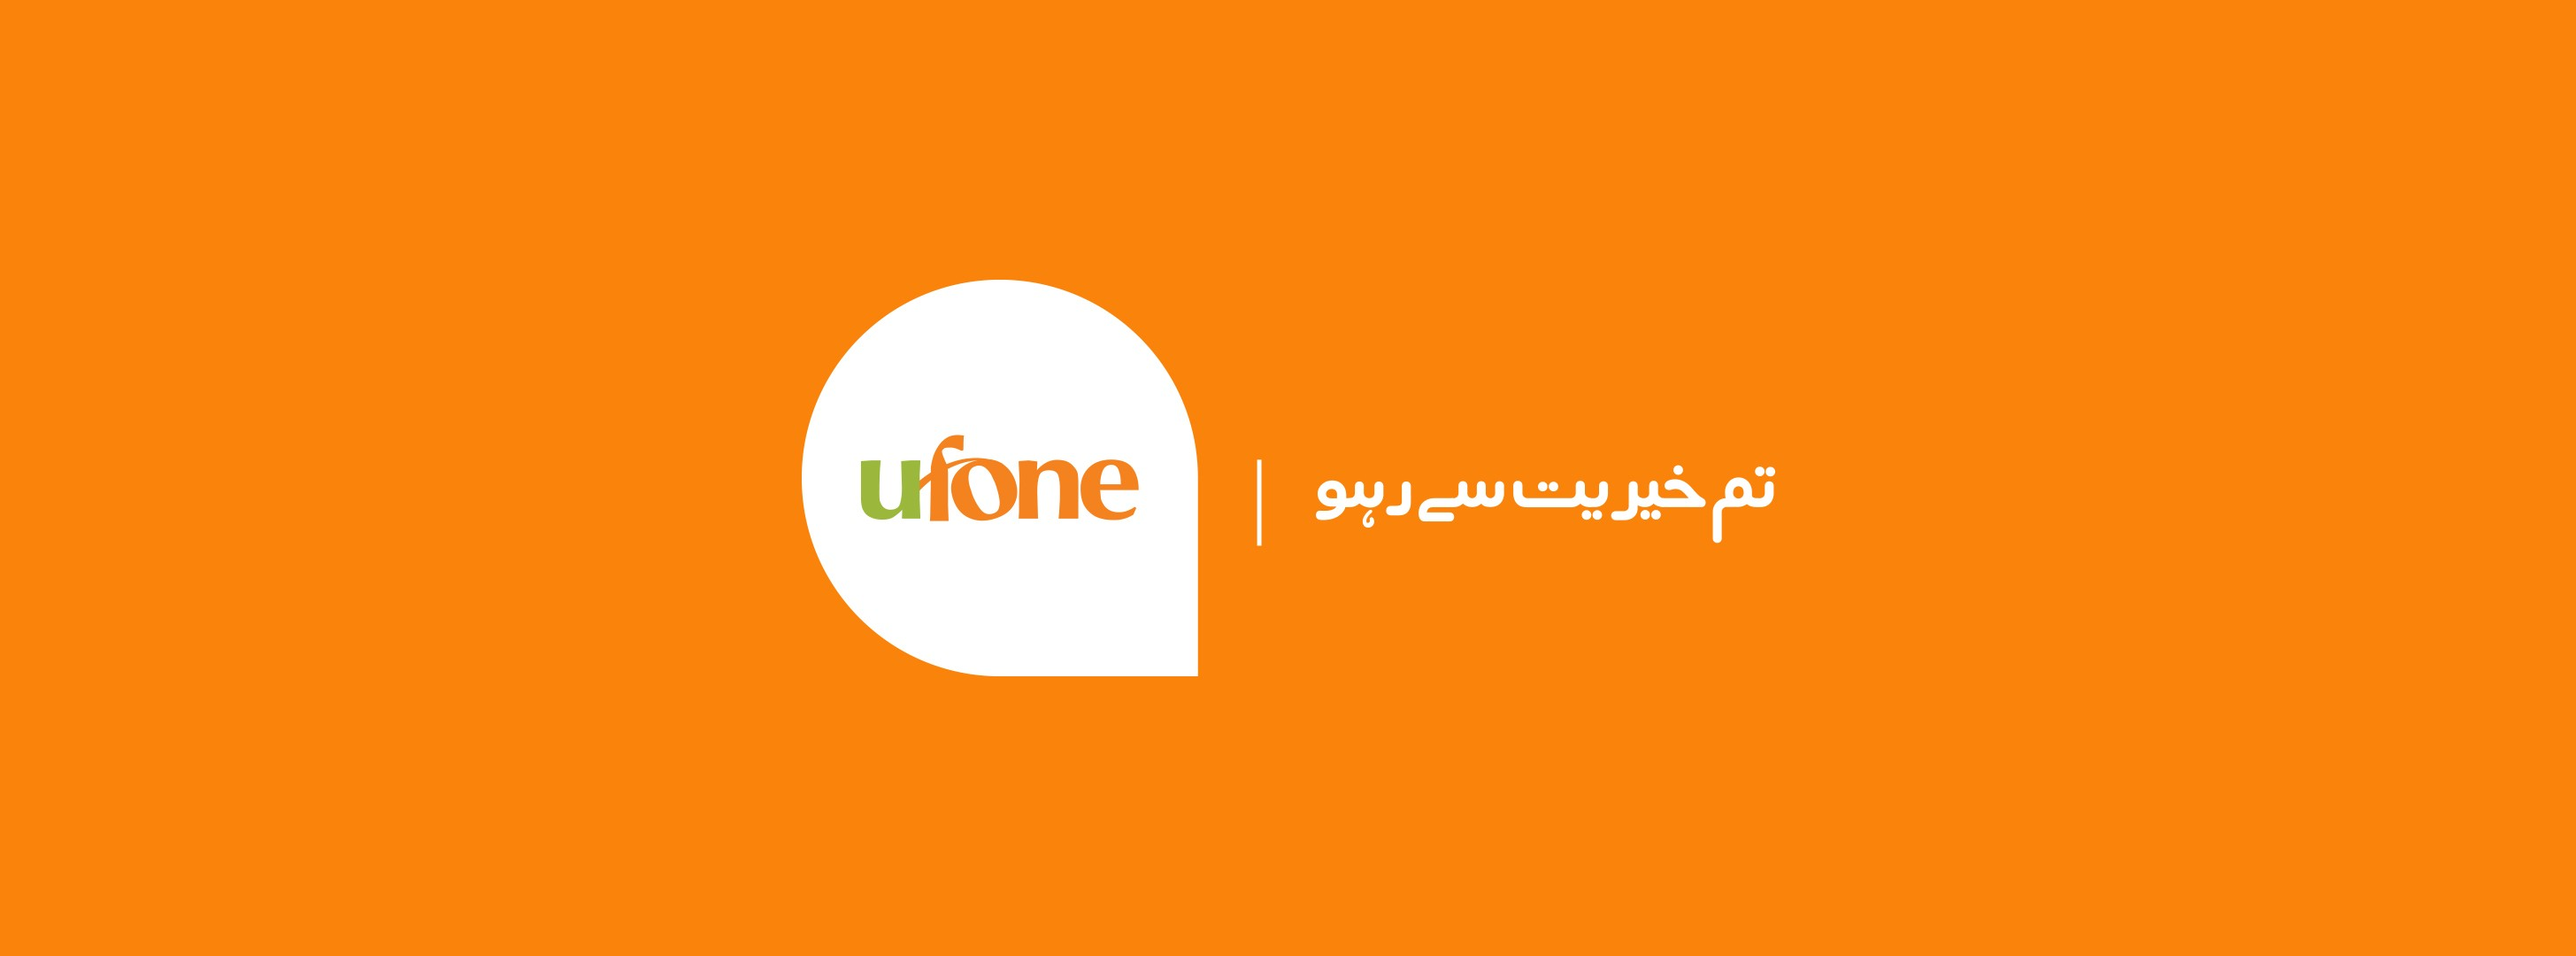 Ufone Work from Home Bundle